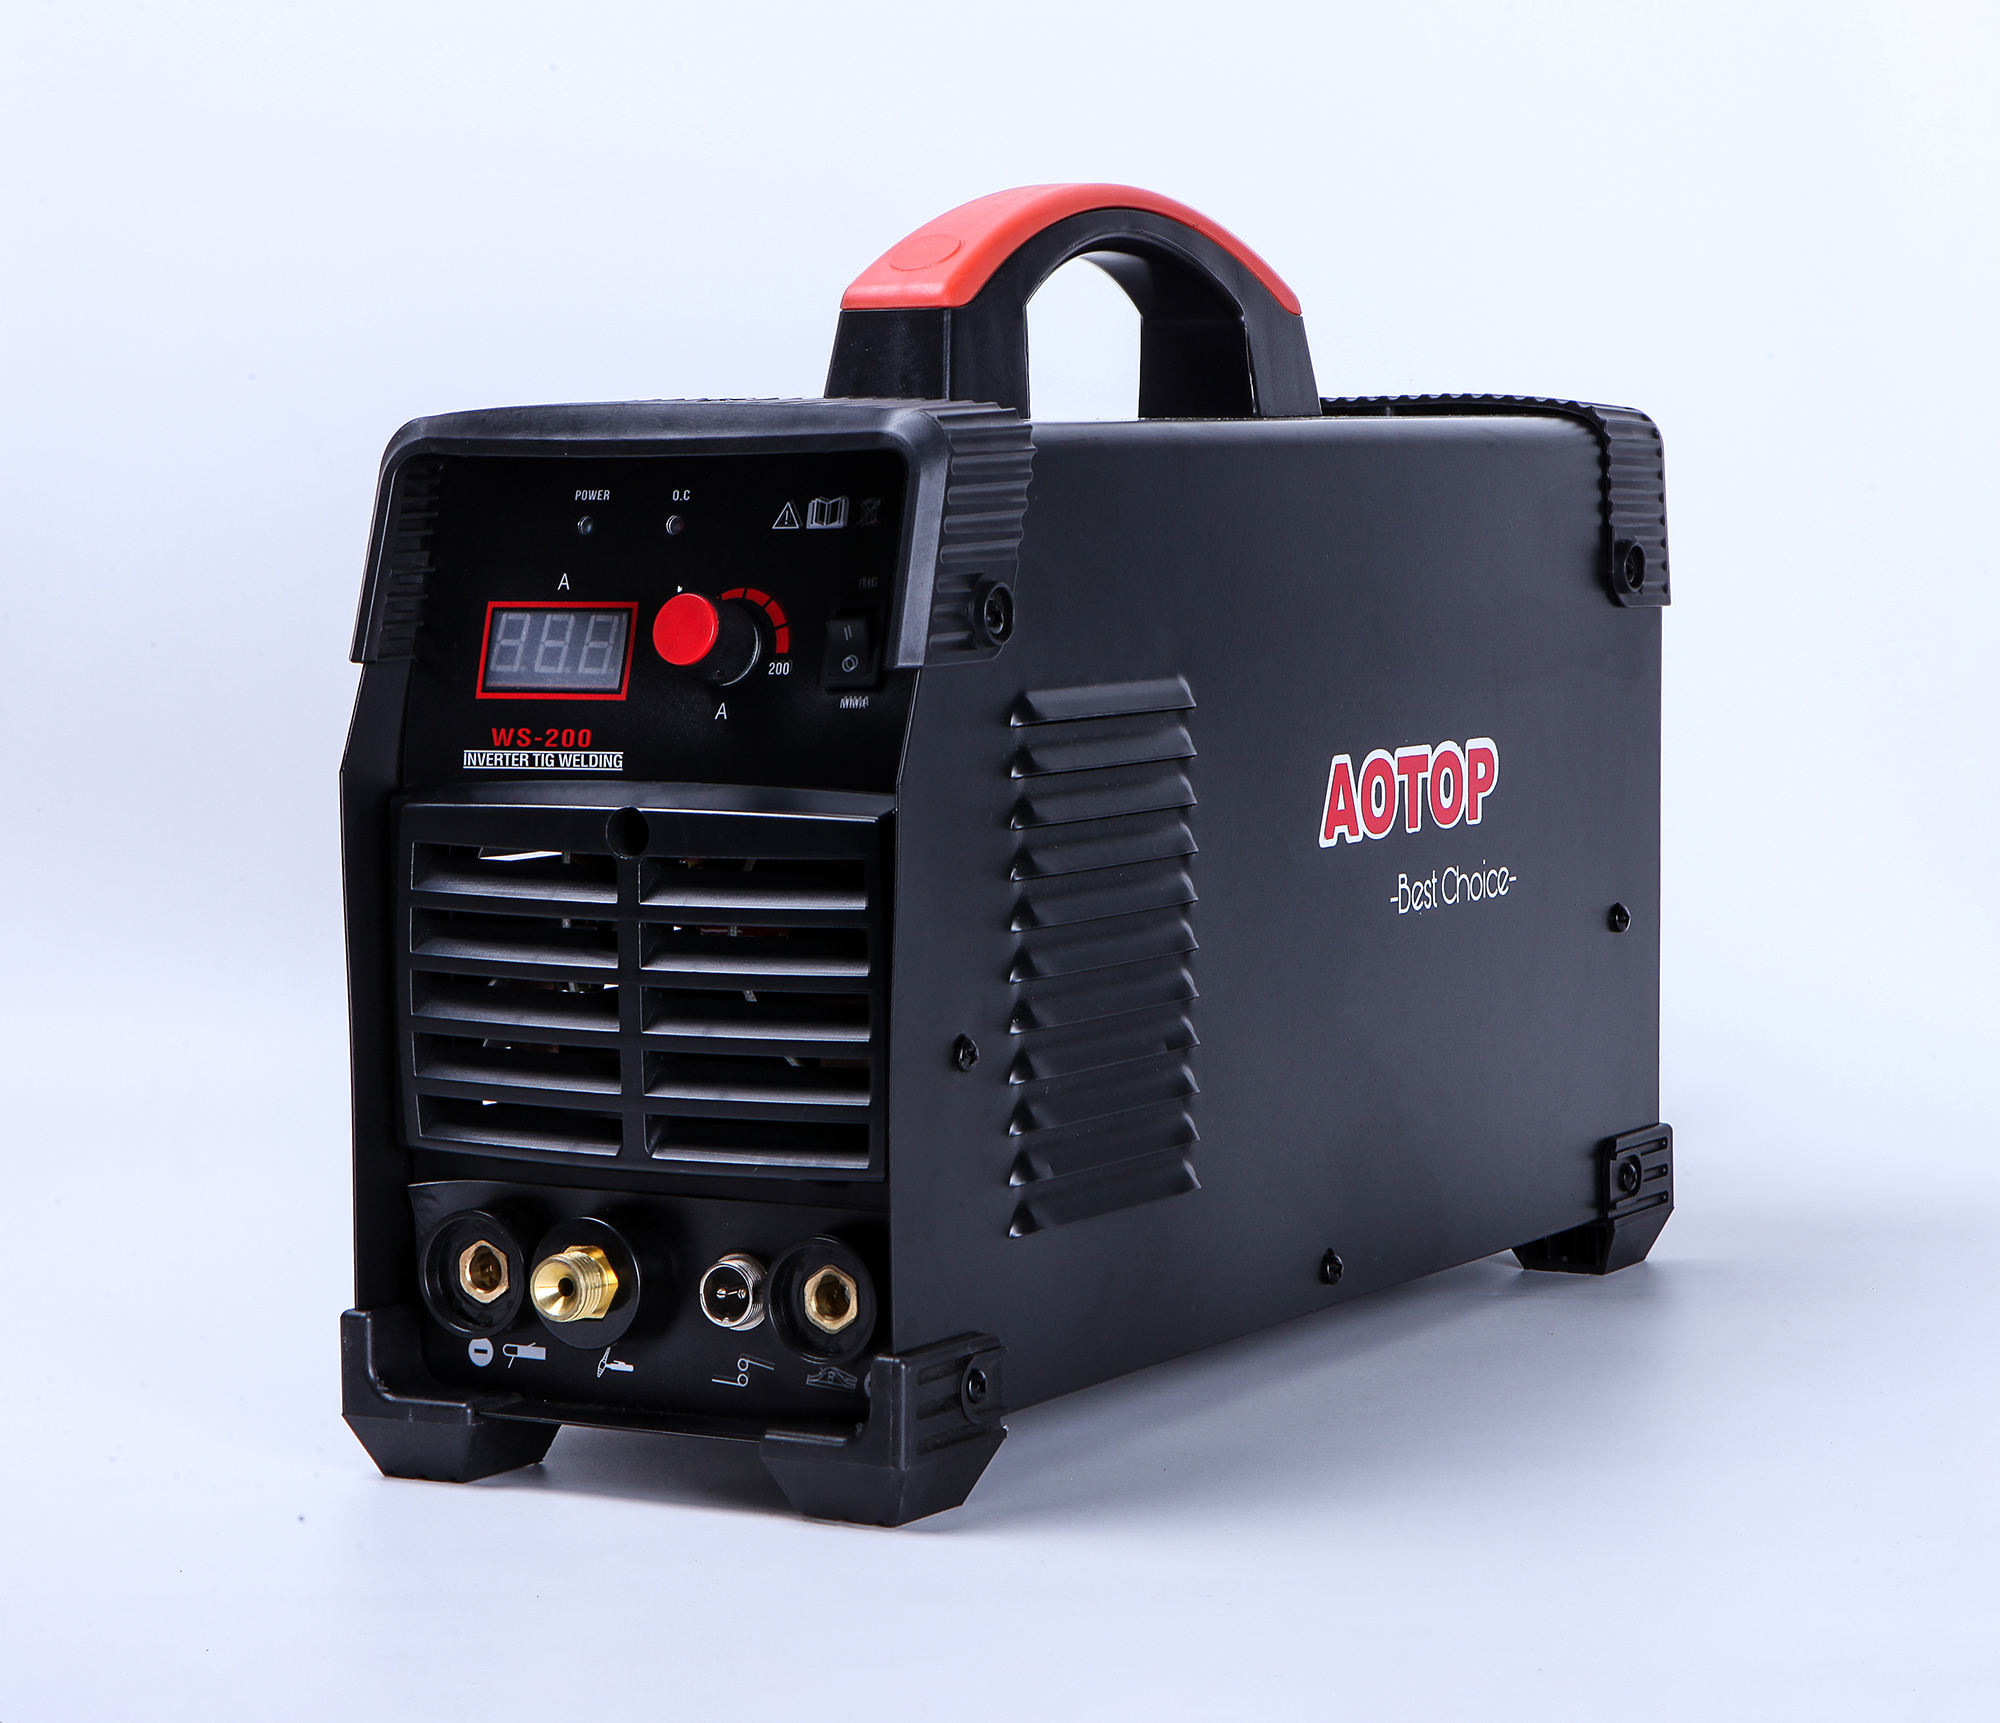 NO.1 AOTOP single phase MMA TIG argon gas welder